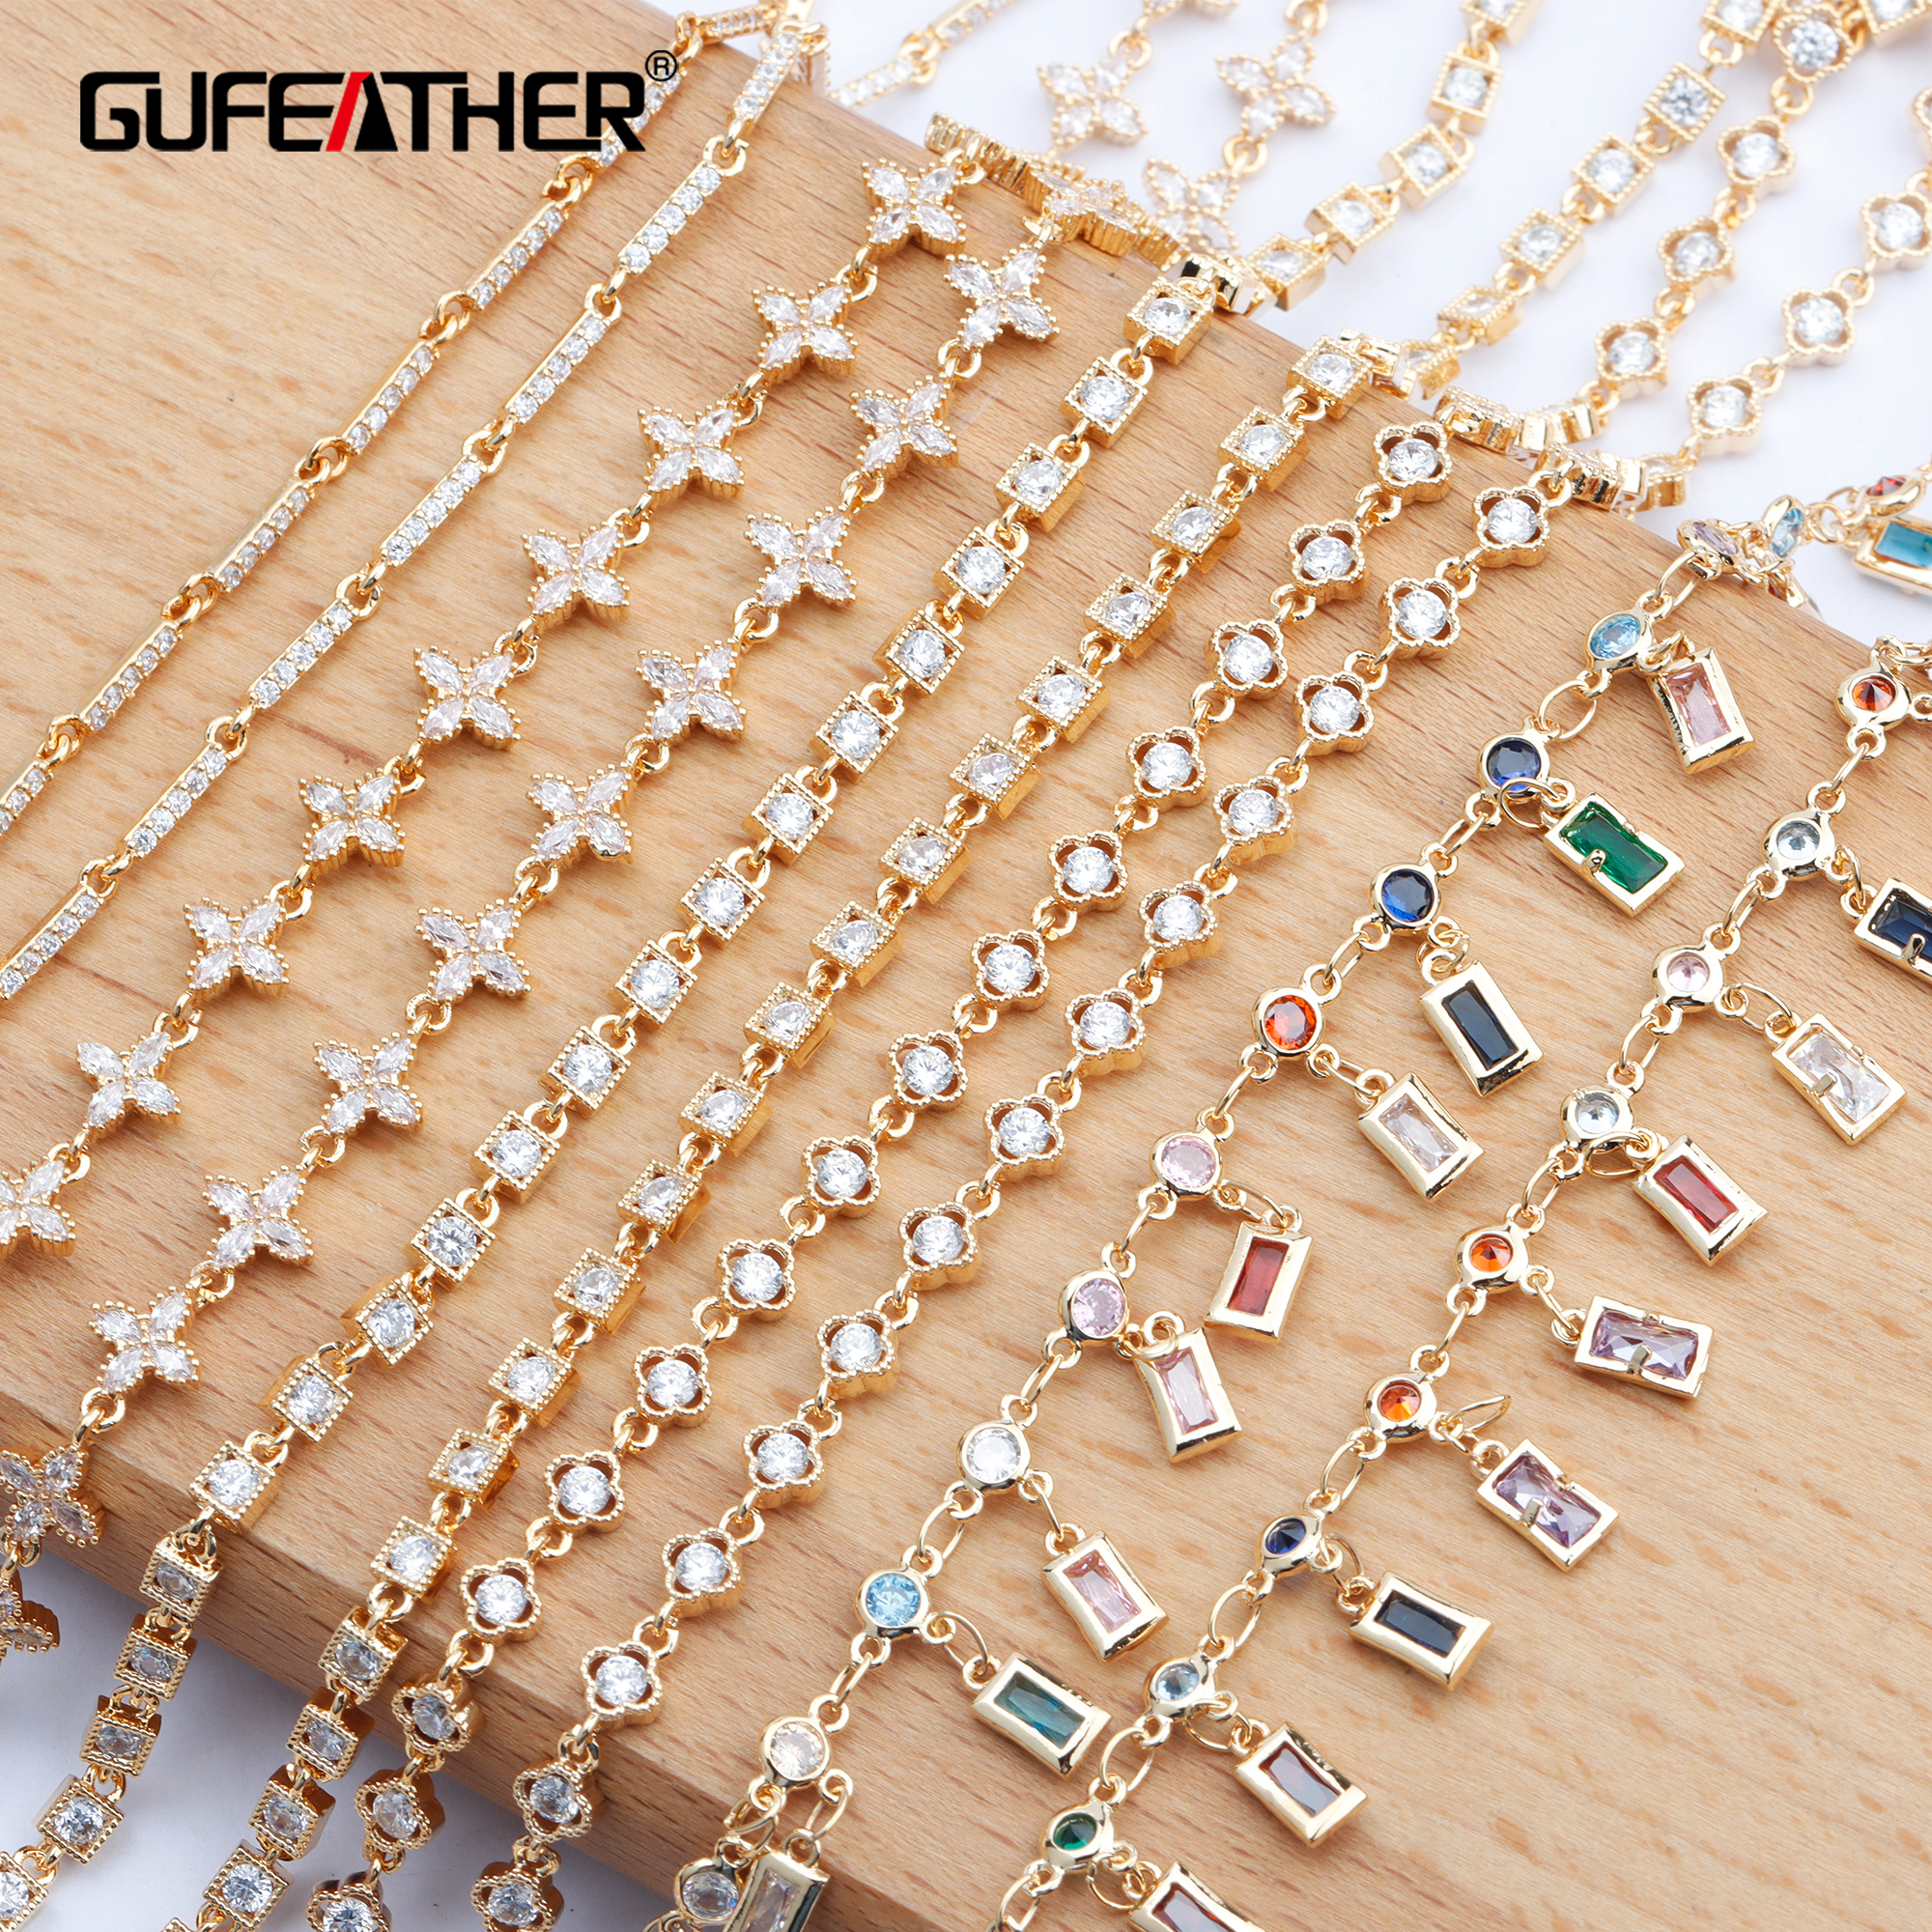 GUFEATHER C78,jewelry Accessories,diy Chain,18k Gold Plated,charms,zircon,hand Made,jewelry Making,diy Chain Necklace,50cm/lot